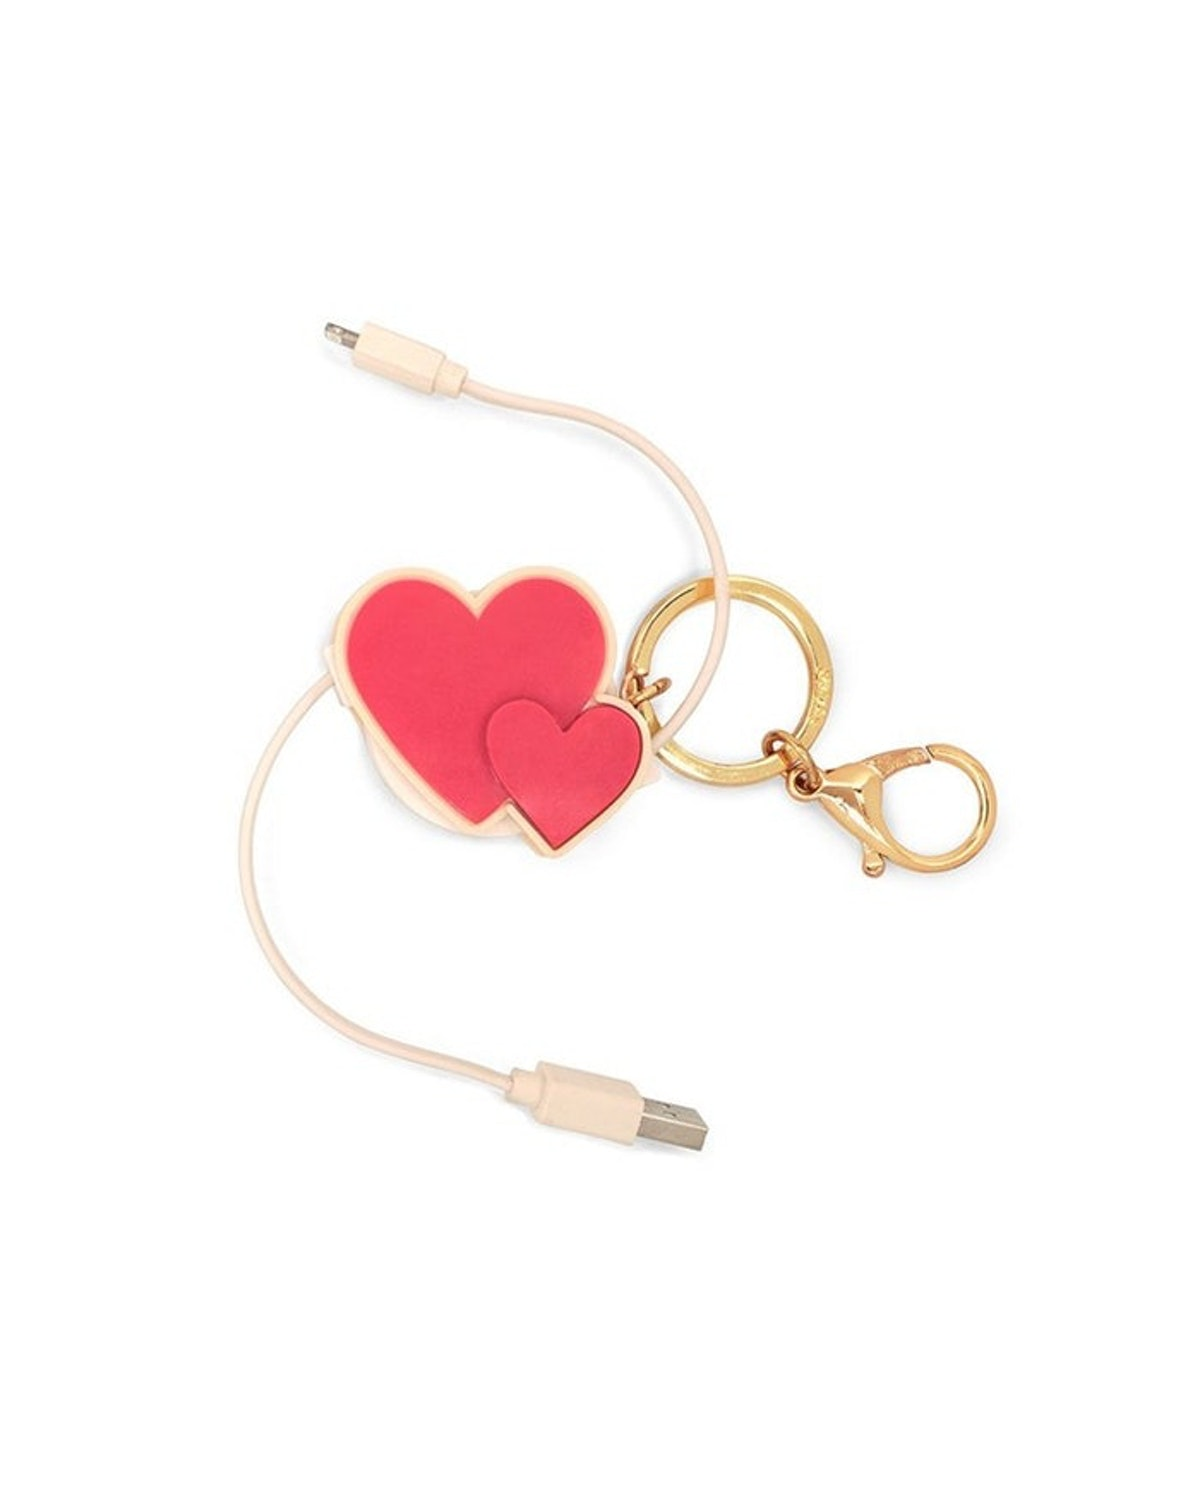 Retractable Charging Cord in Heart To Heart